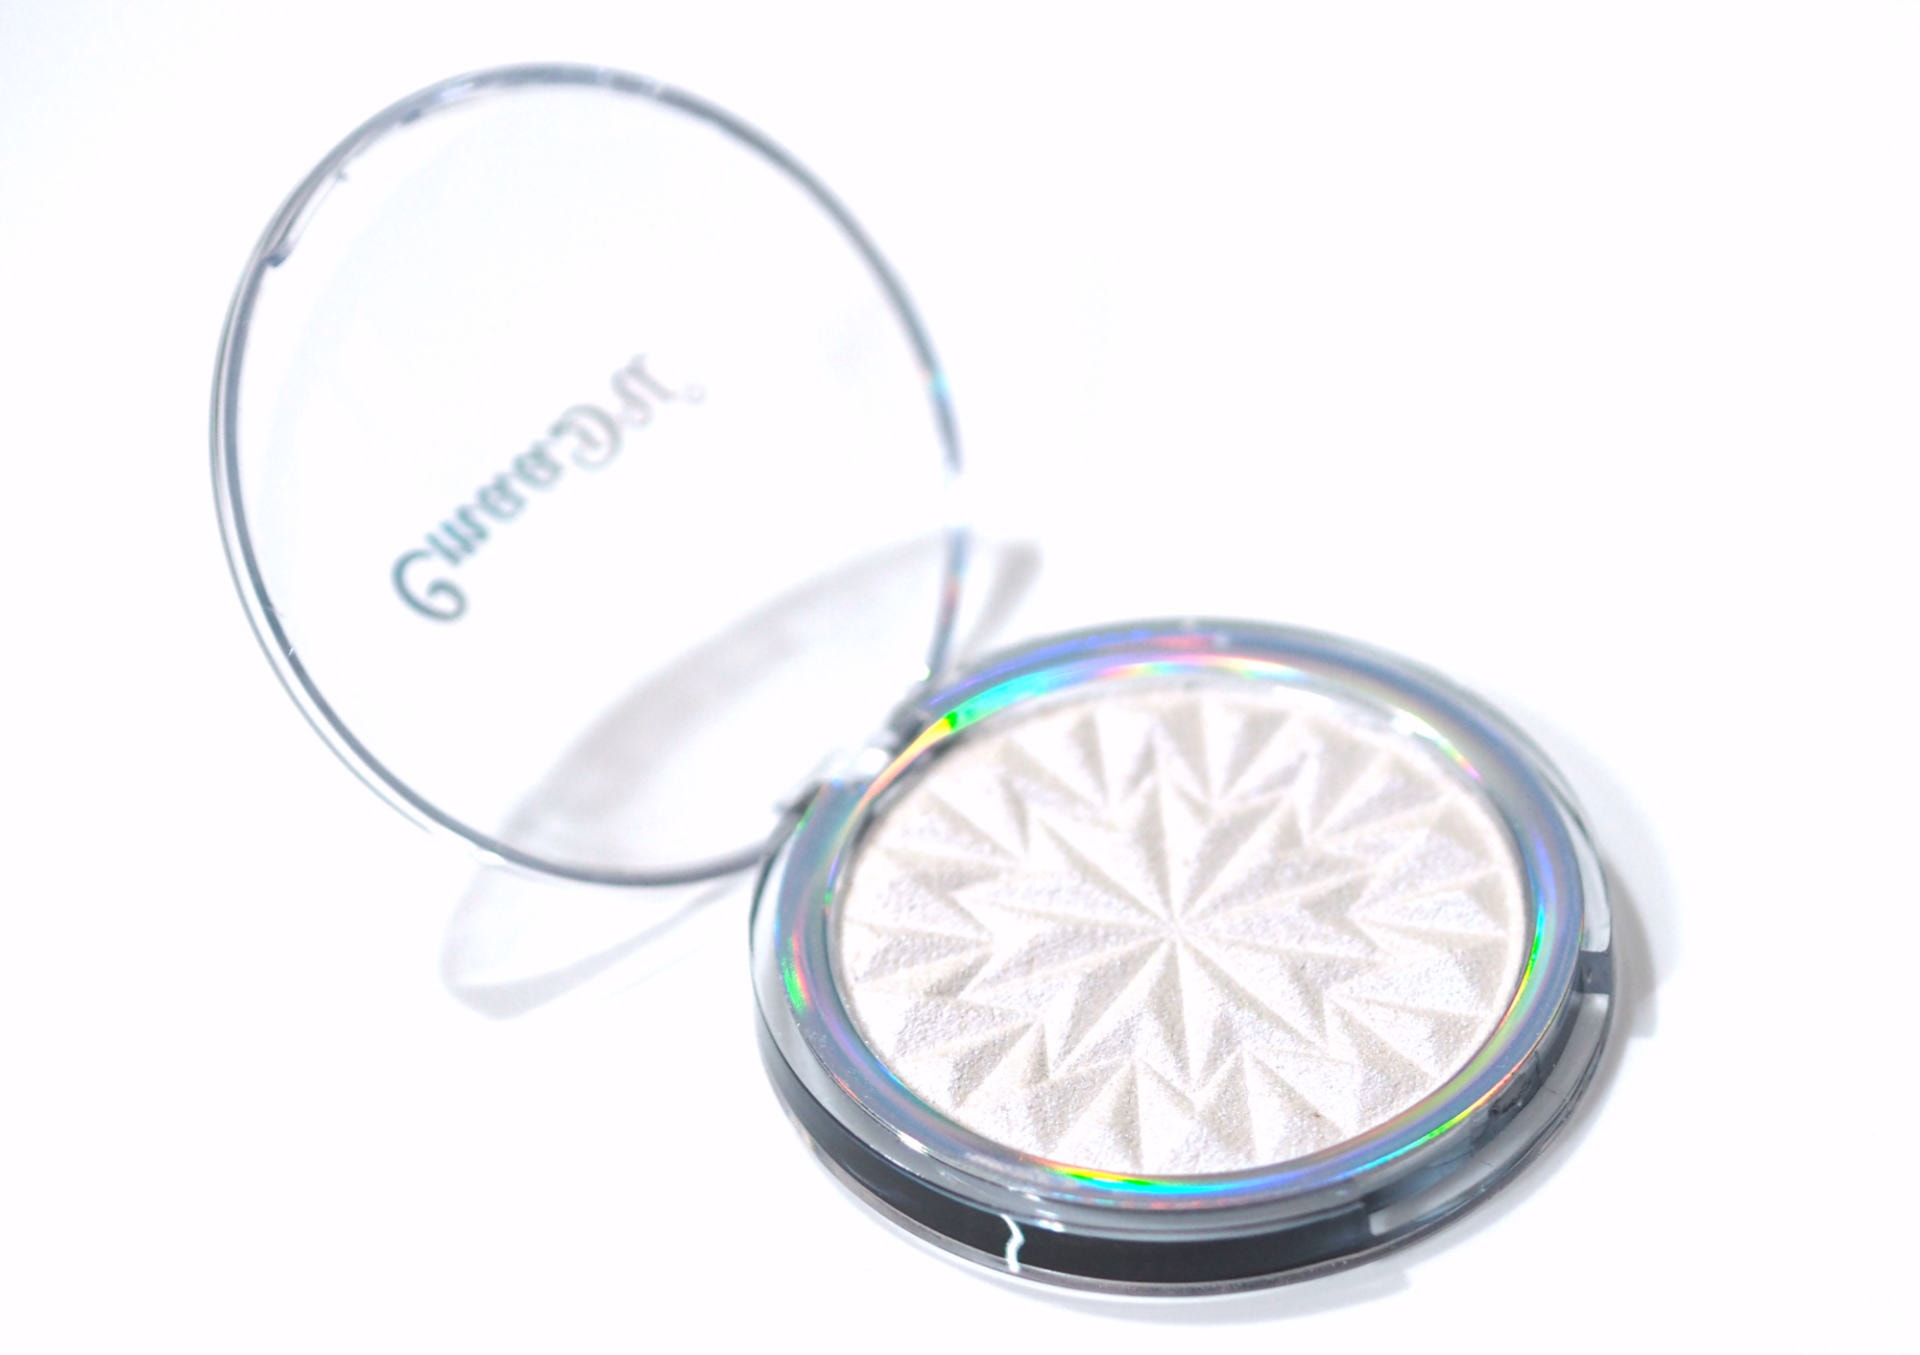 CmaaDu Shimmer Highlighter Review and Swatches in shade 01